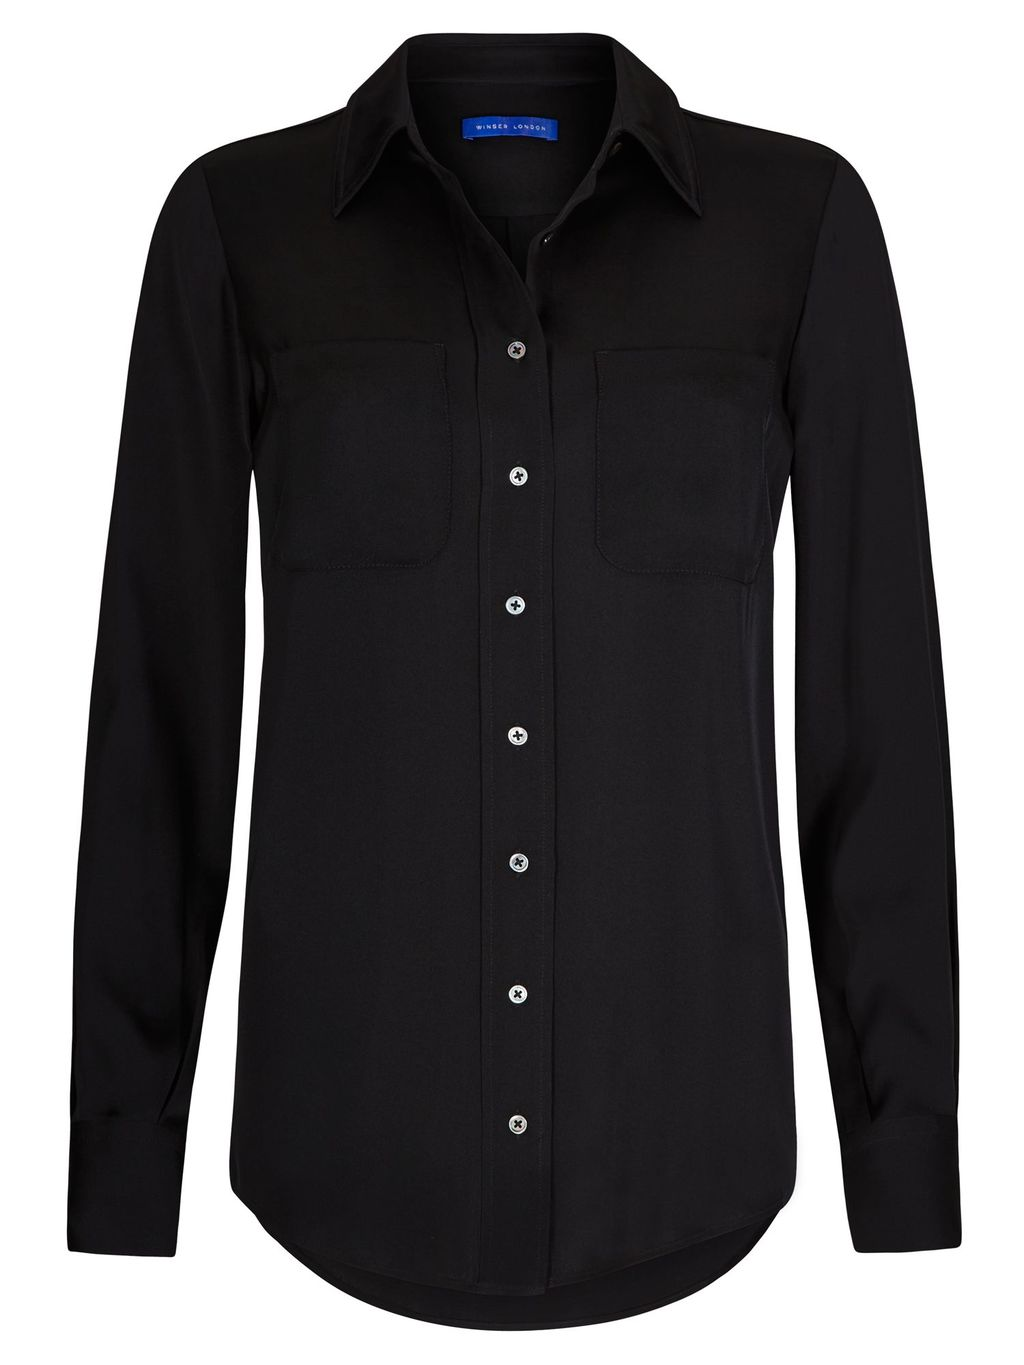 Silk Shirt, Black - neckline: shirt collar/peter pan/zip with opening; pattern: plain; style: shirt; predominant colour: black; occasions: casual, creative work; length: standard; fibres: silk - 100%; fit: straight cut; sleeve length: long sleeve; sleeve style: standard; texture group: silky - light; pattern type: fabric; season: s/s 2016; wardrobe: basic